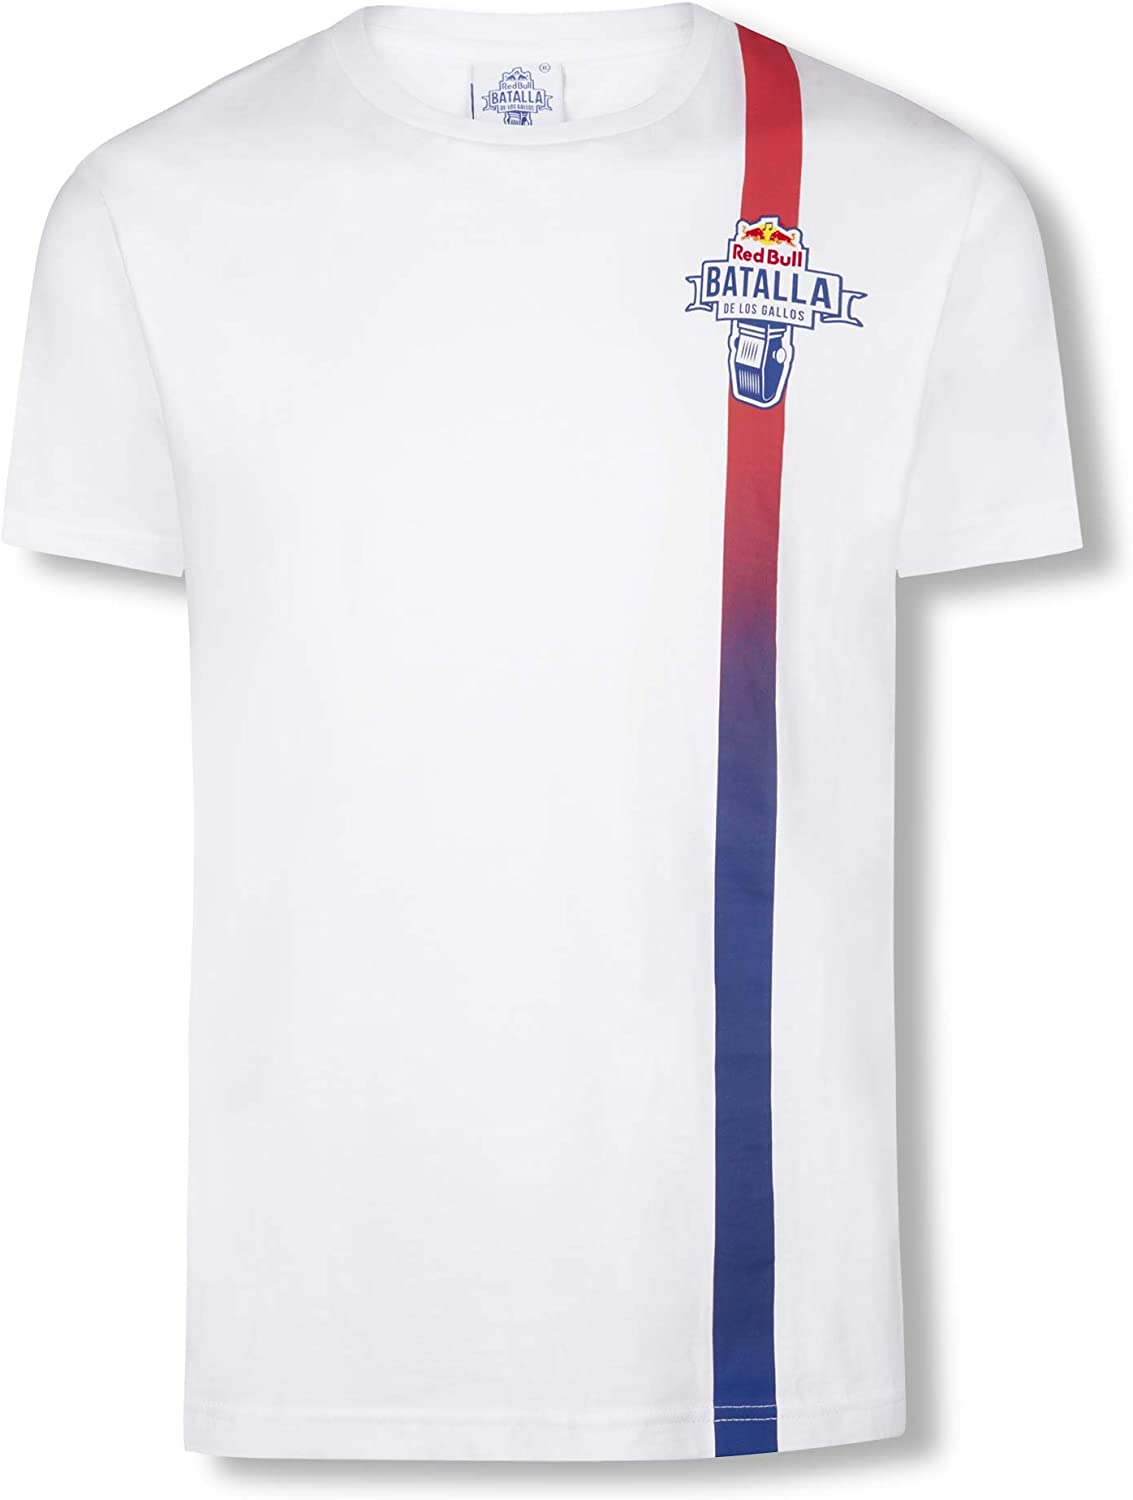 Red Bull Batalla Fading Camiseta, Blanco Hombre XX-Large Top ...